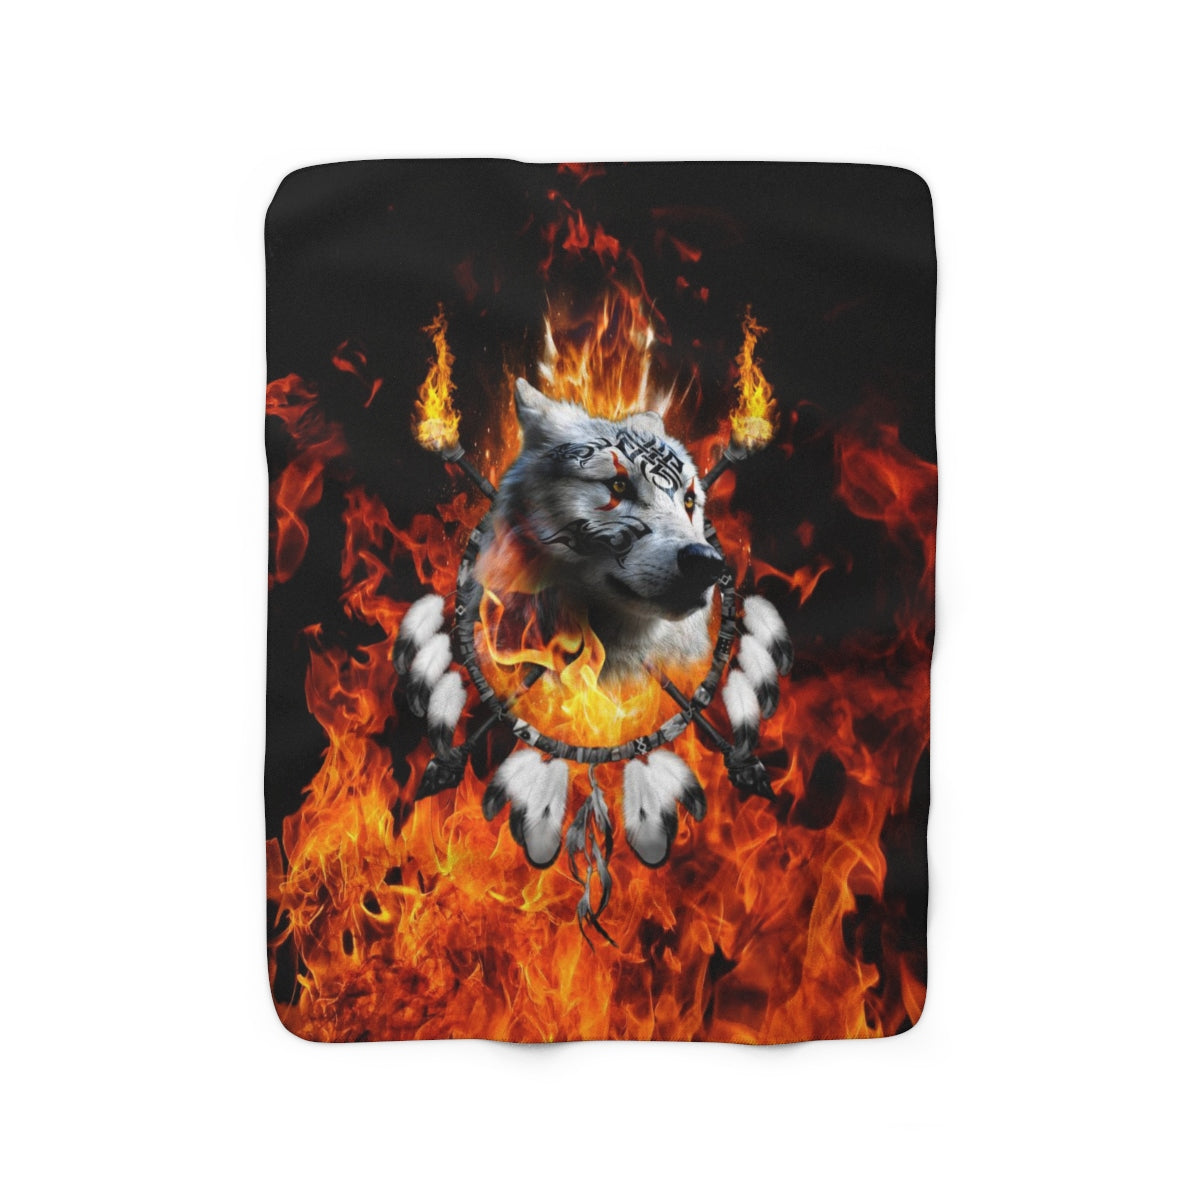 Fire Nation Chief 3 Sherpa Fleece Blanket